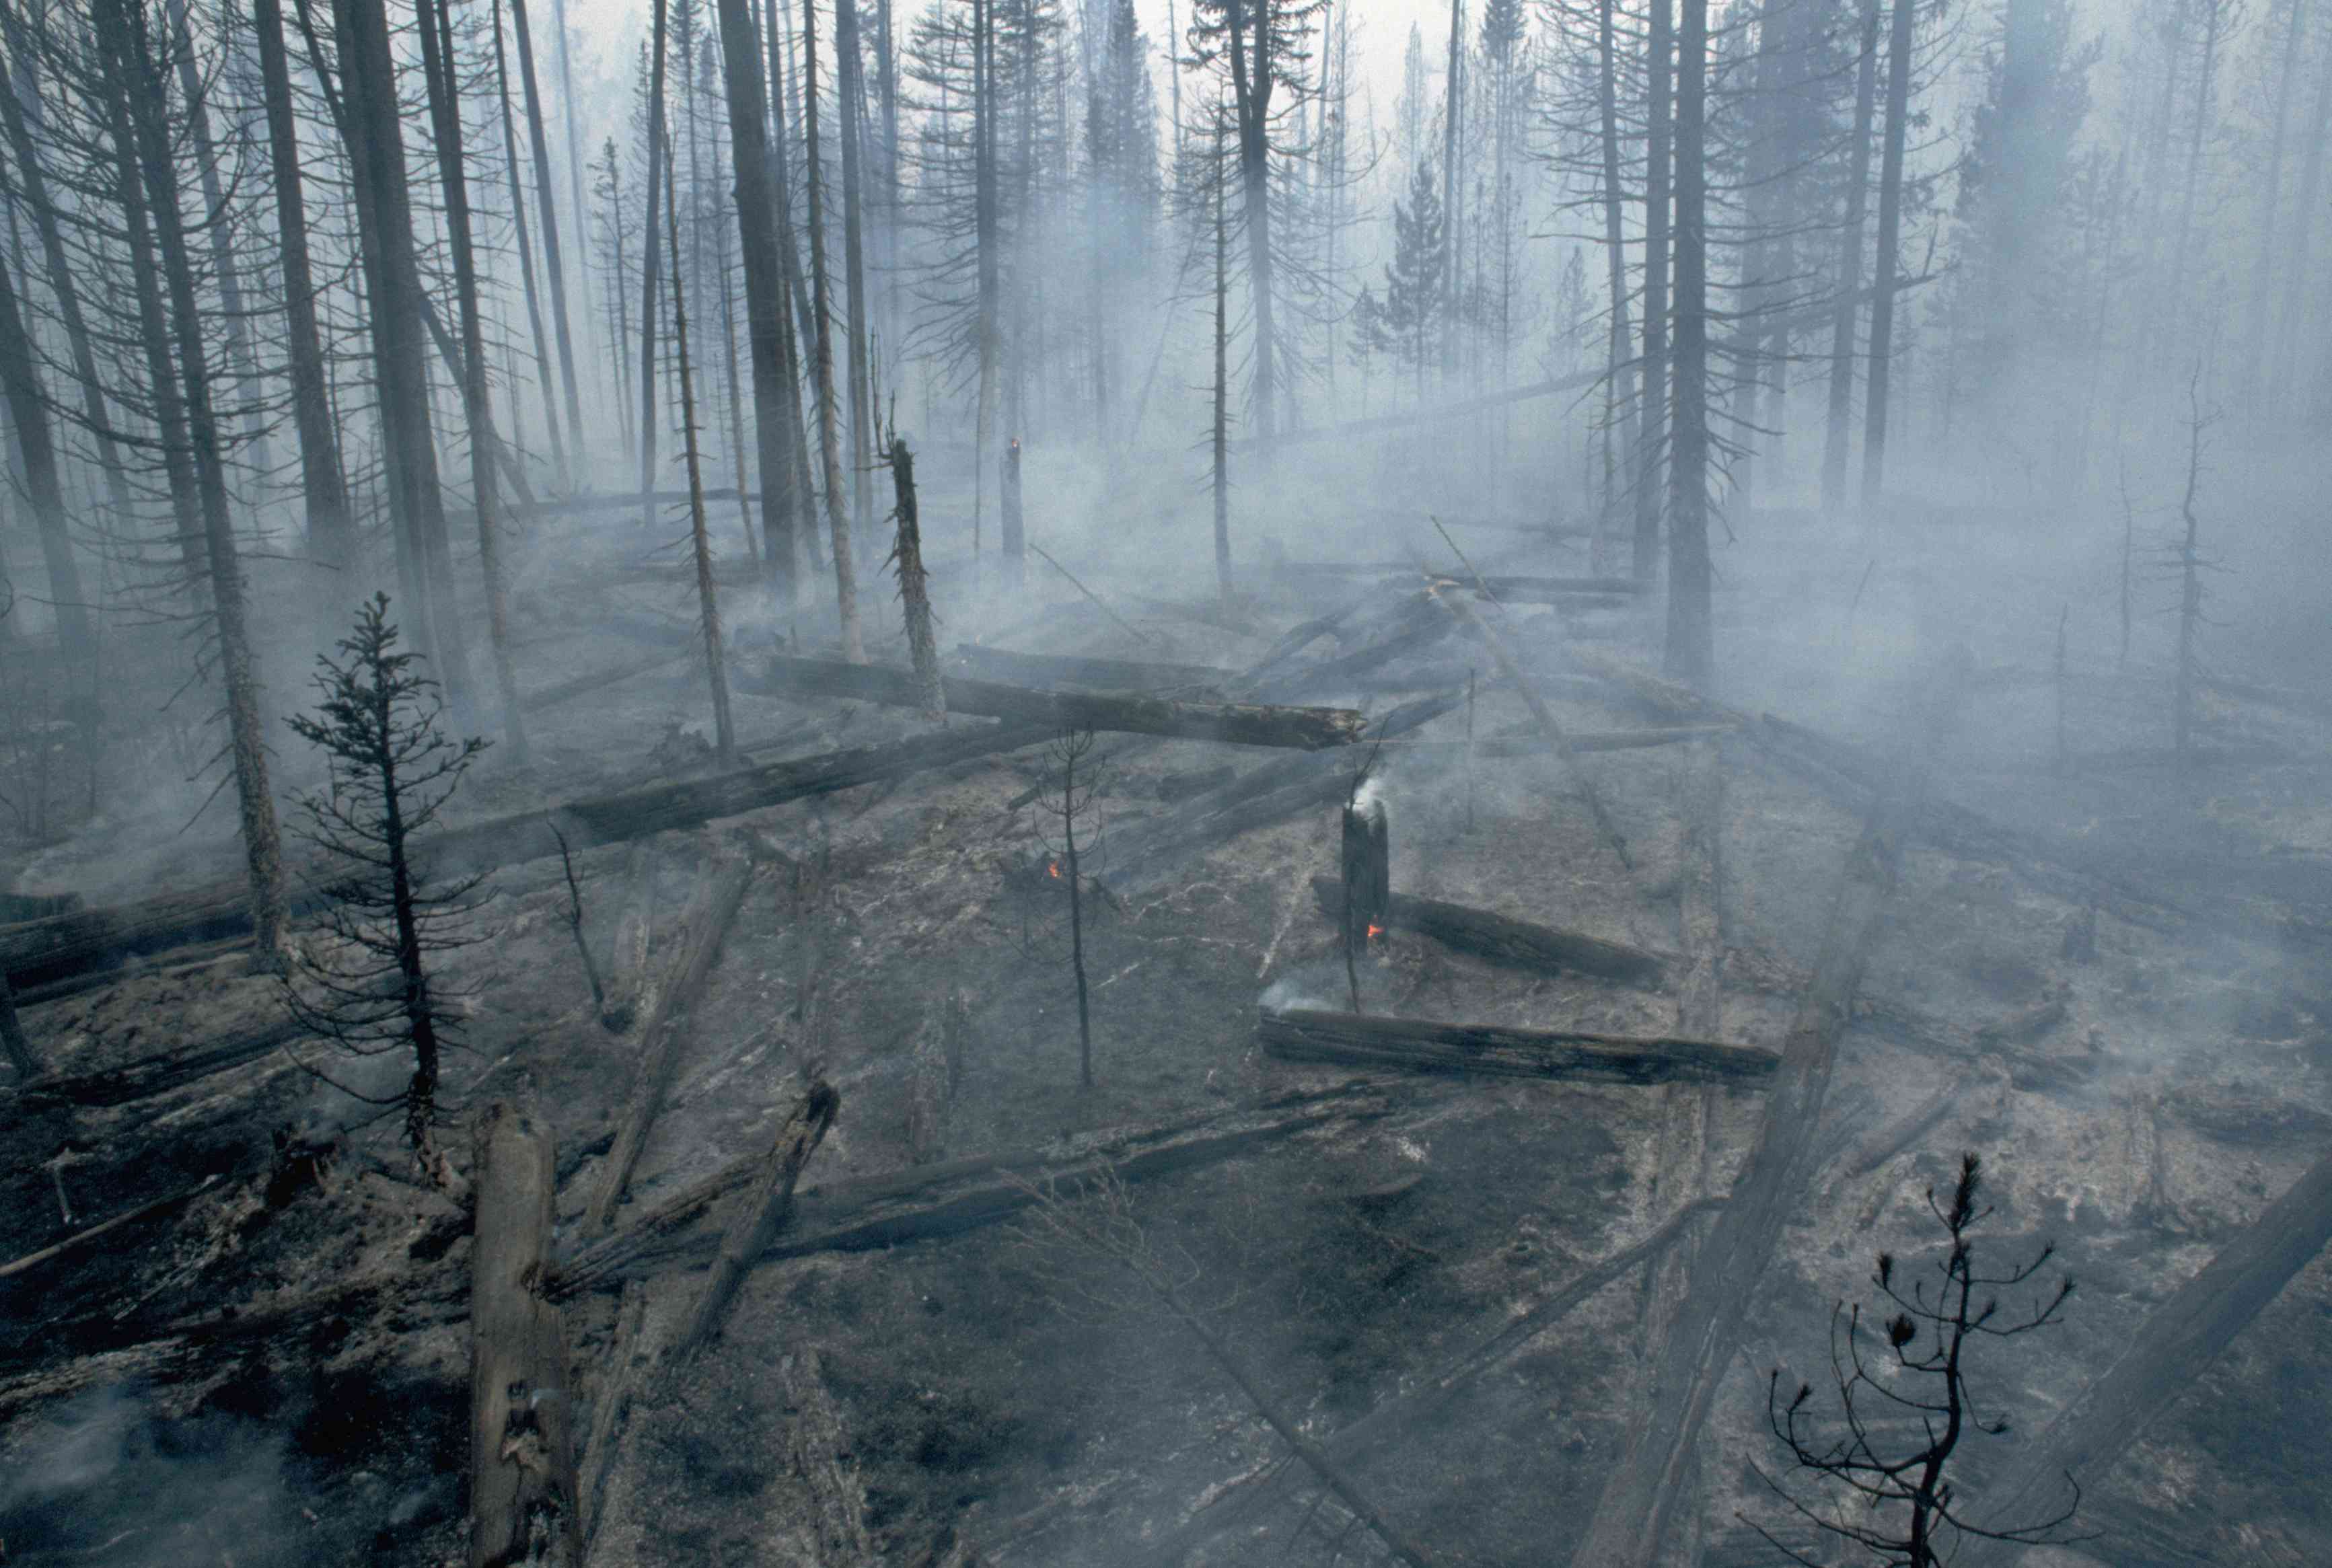 A lodgepole pine forest after a fire